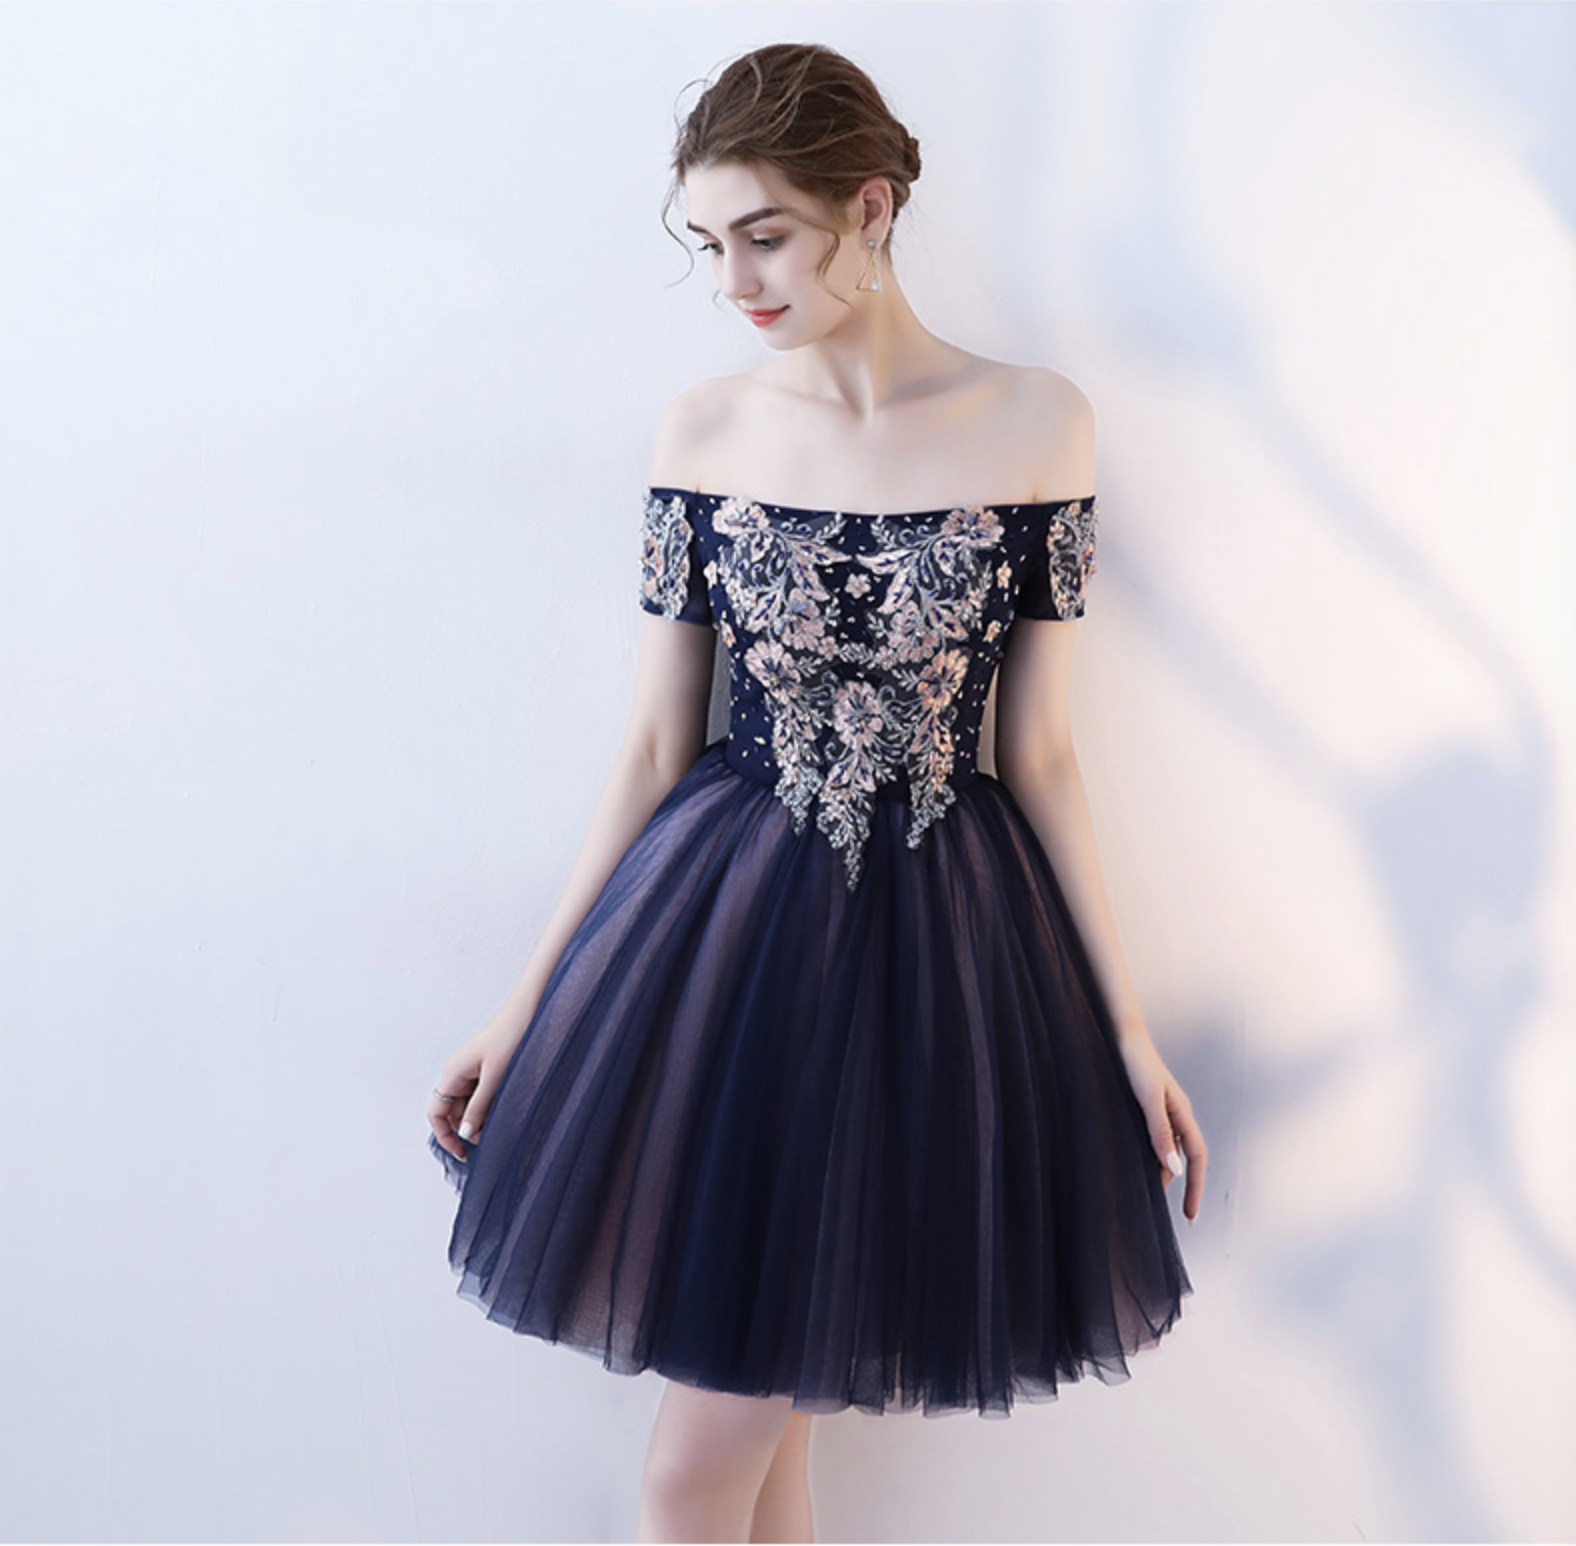 b79a906d4ab Cute tulle lace off shoulder short prom dress, homecoming dress - Thumbnail  1 ...